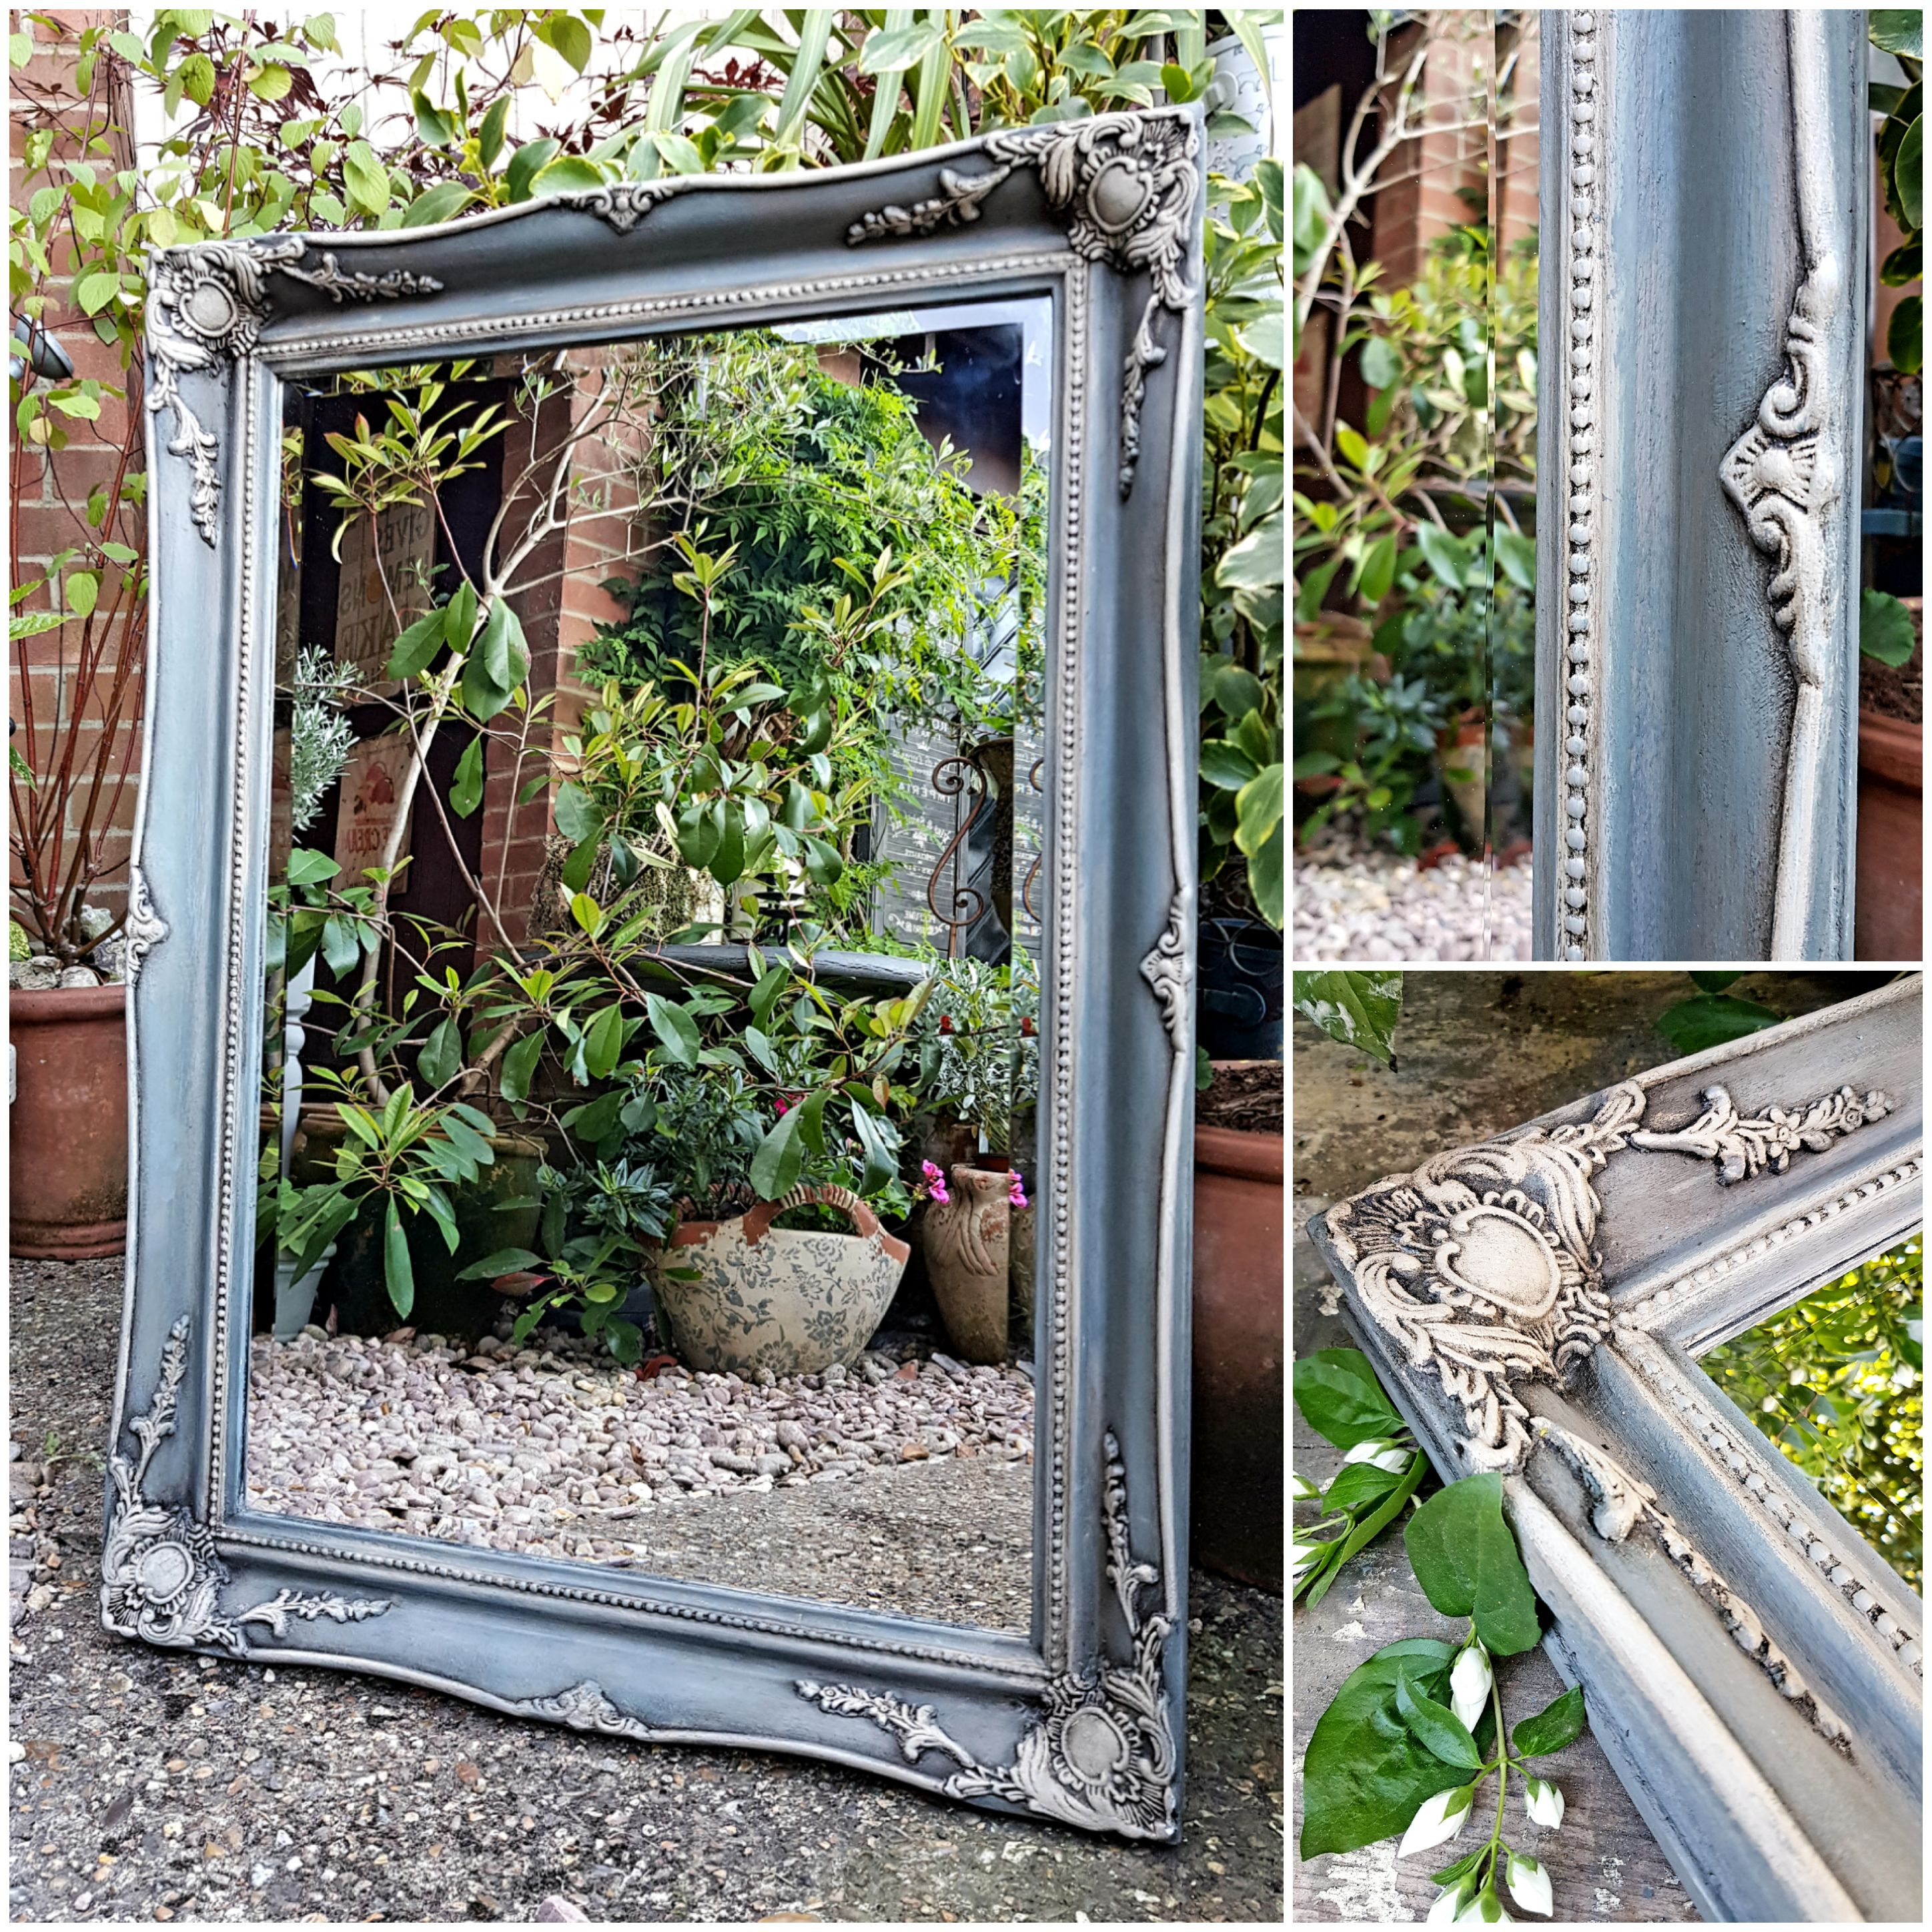 The French Patina Mirror